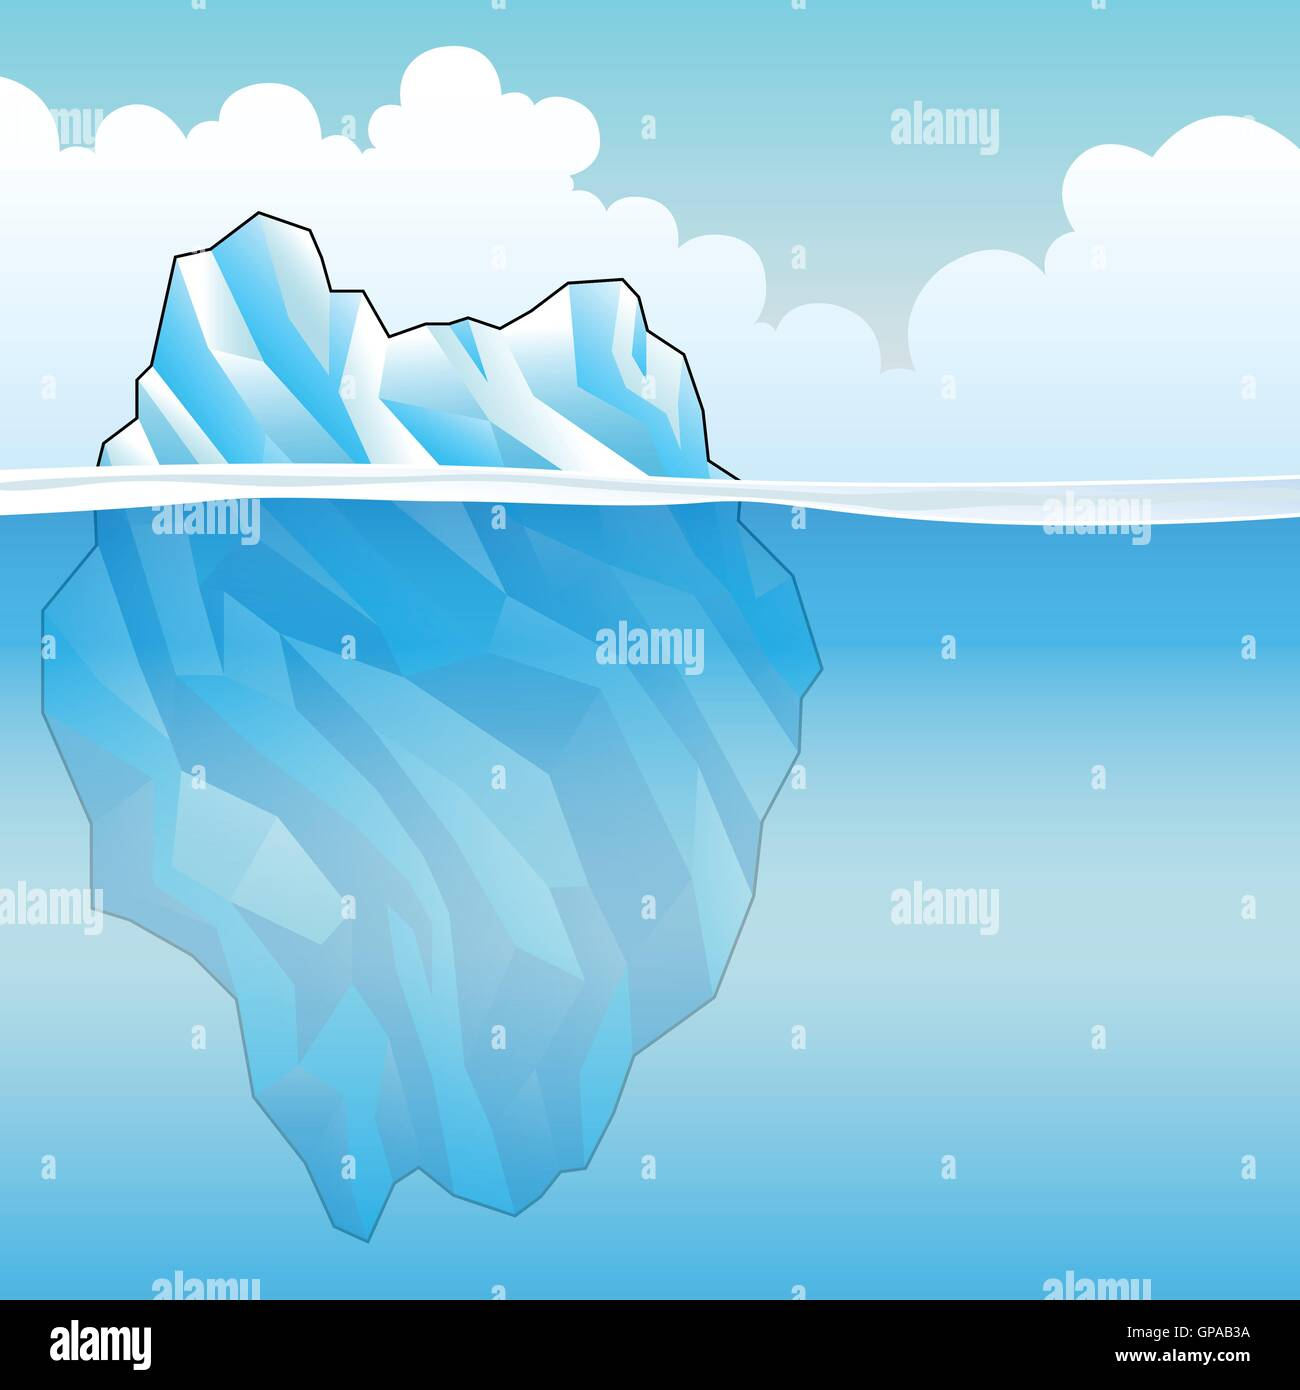 Blue Iceberg on a bright cloudy day Vector Illustration - Stock Vector